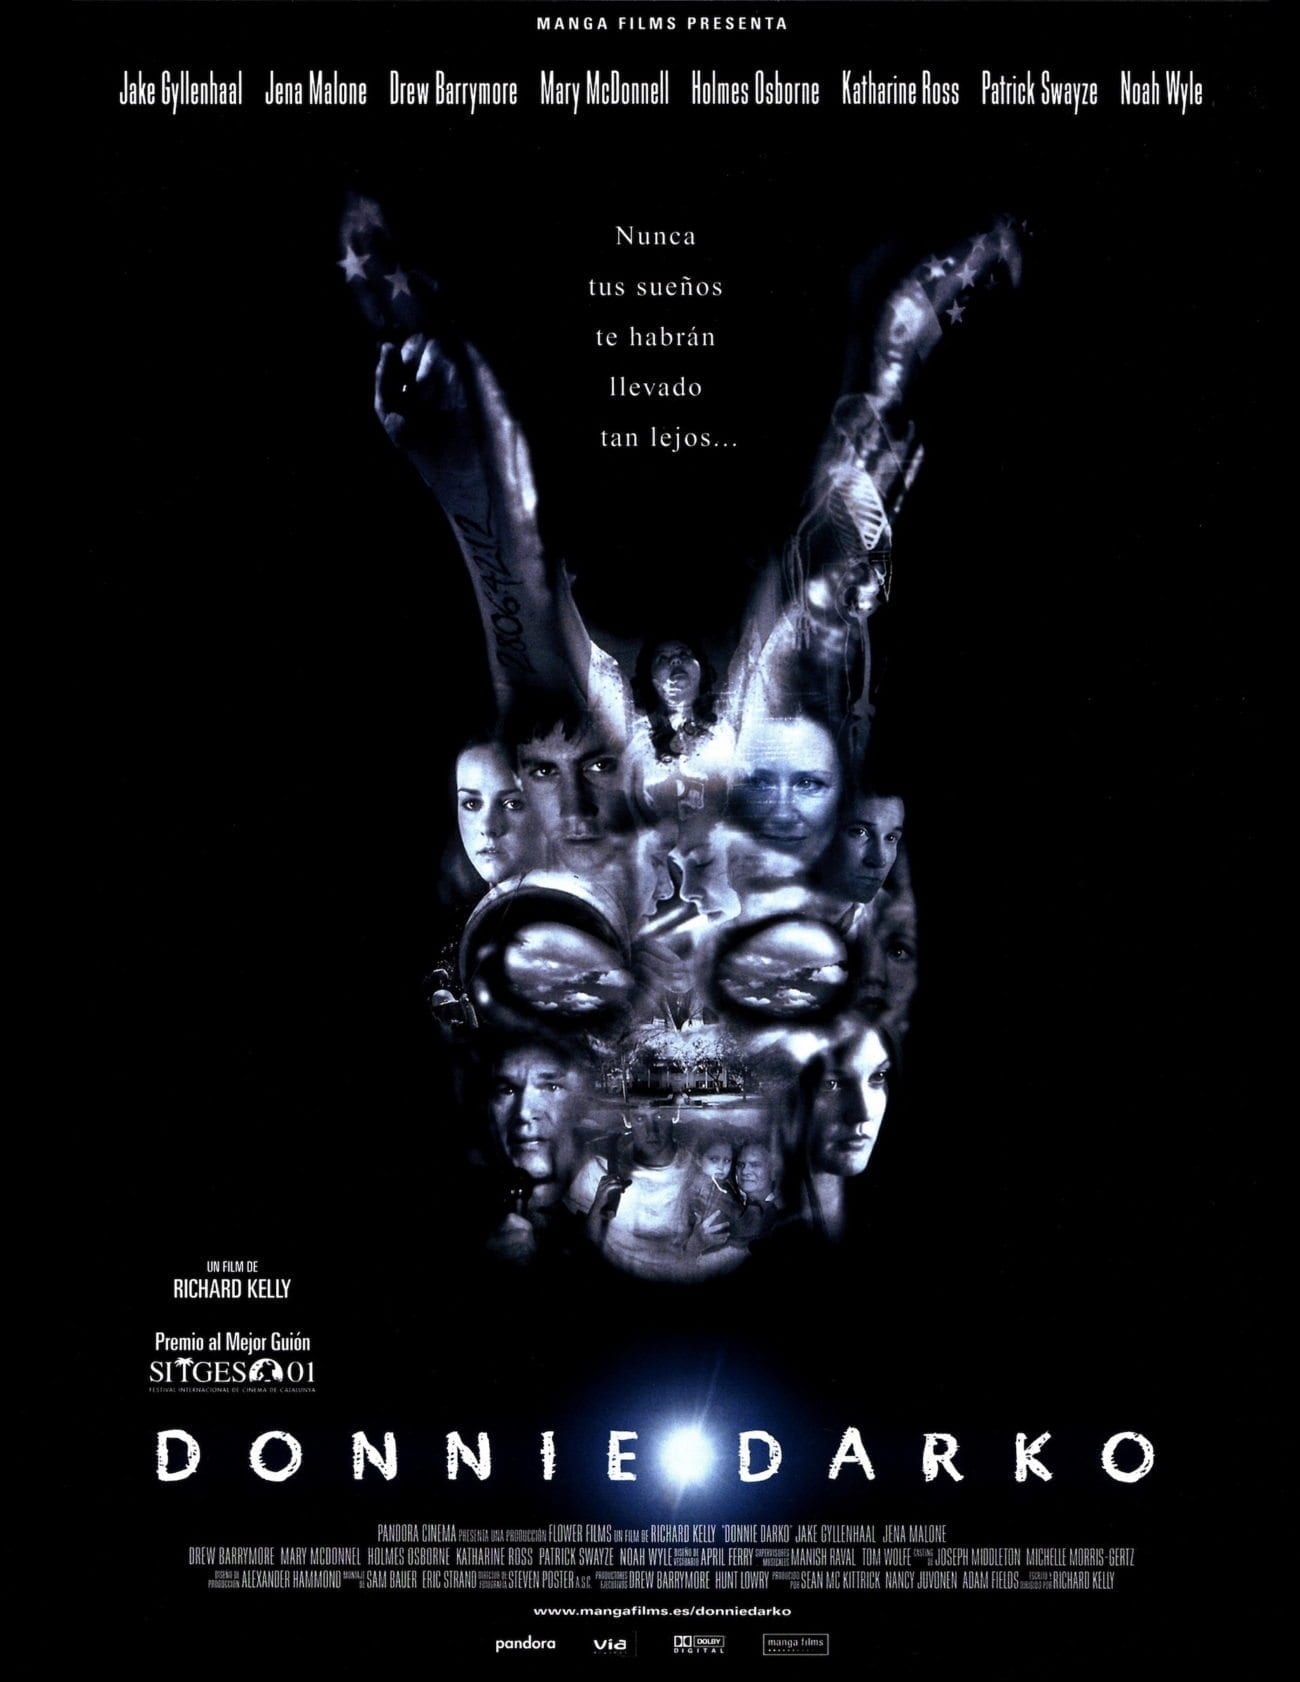 In fact, the concept of time travel acts as the deus ex machina for 'Donnie Darko''s plot, creating the wormhole which allows Donnie to reset his timeline.